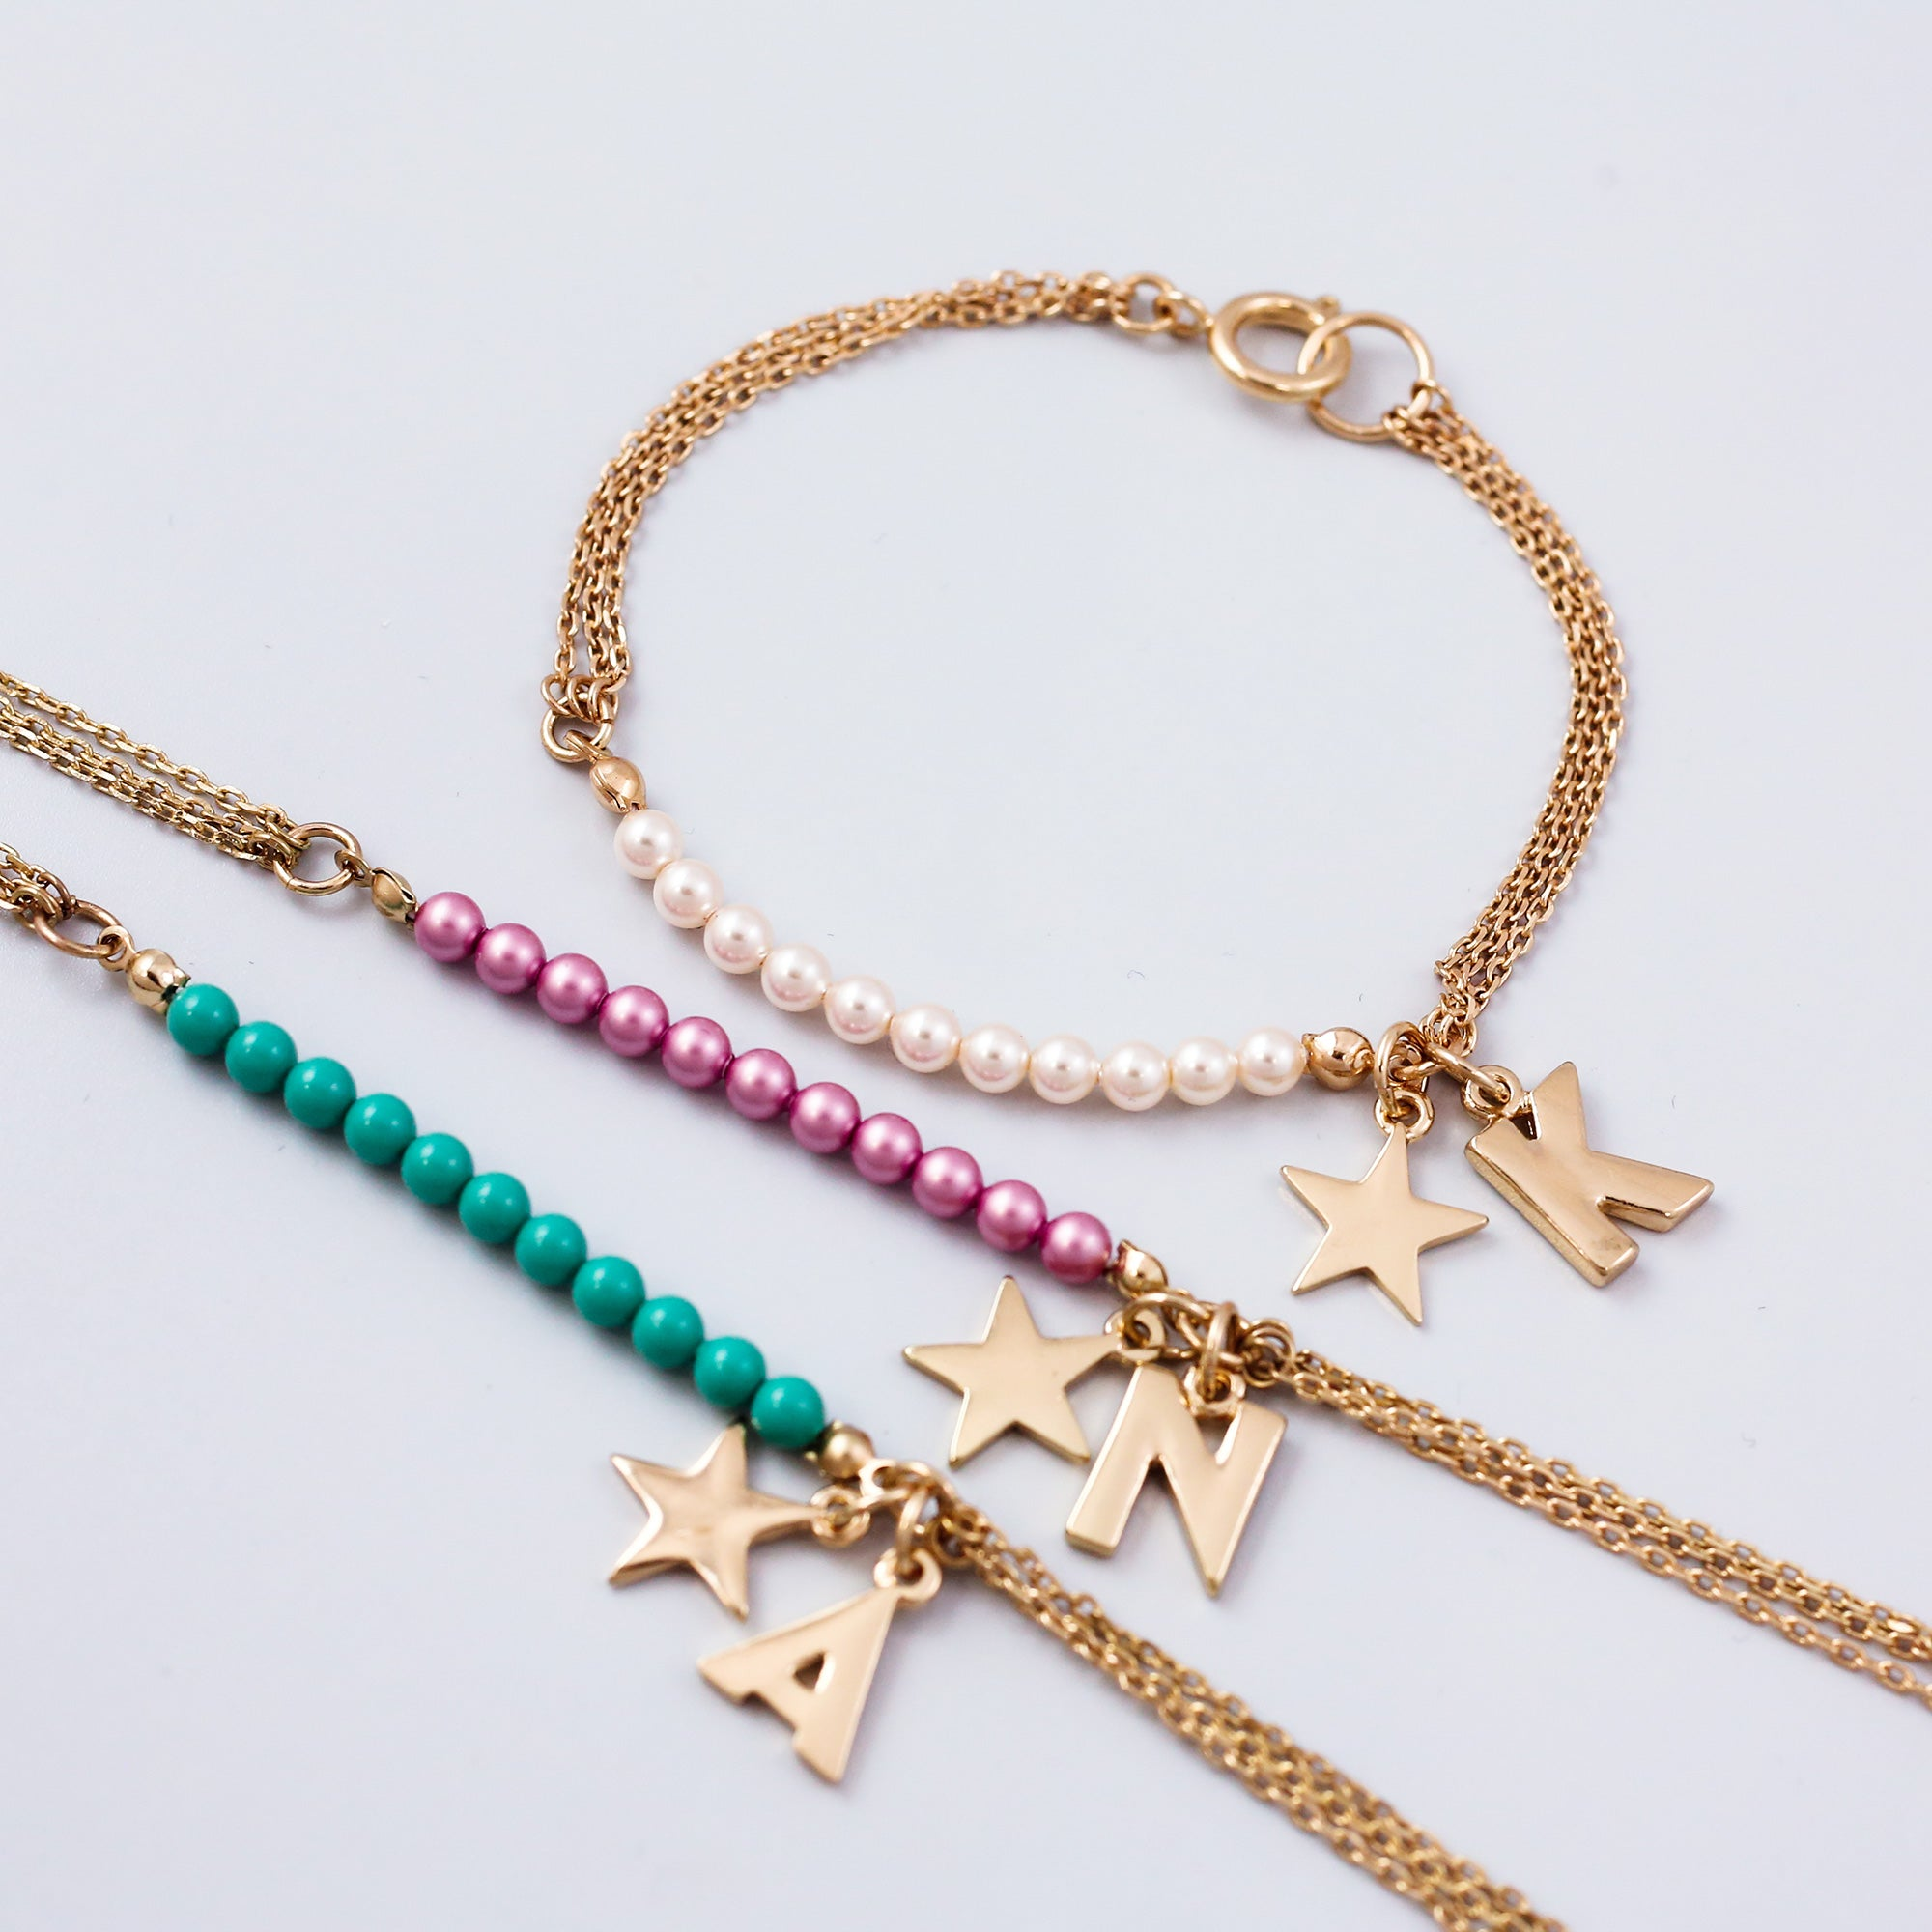 Personalised Gold Charm Bracelet Made with Pearls from Swarovski ®